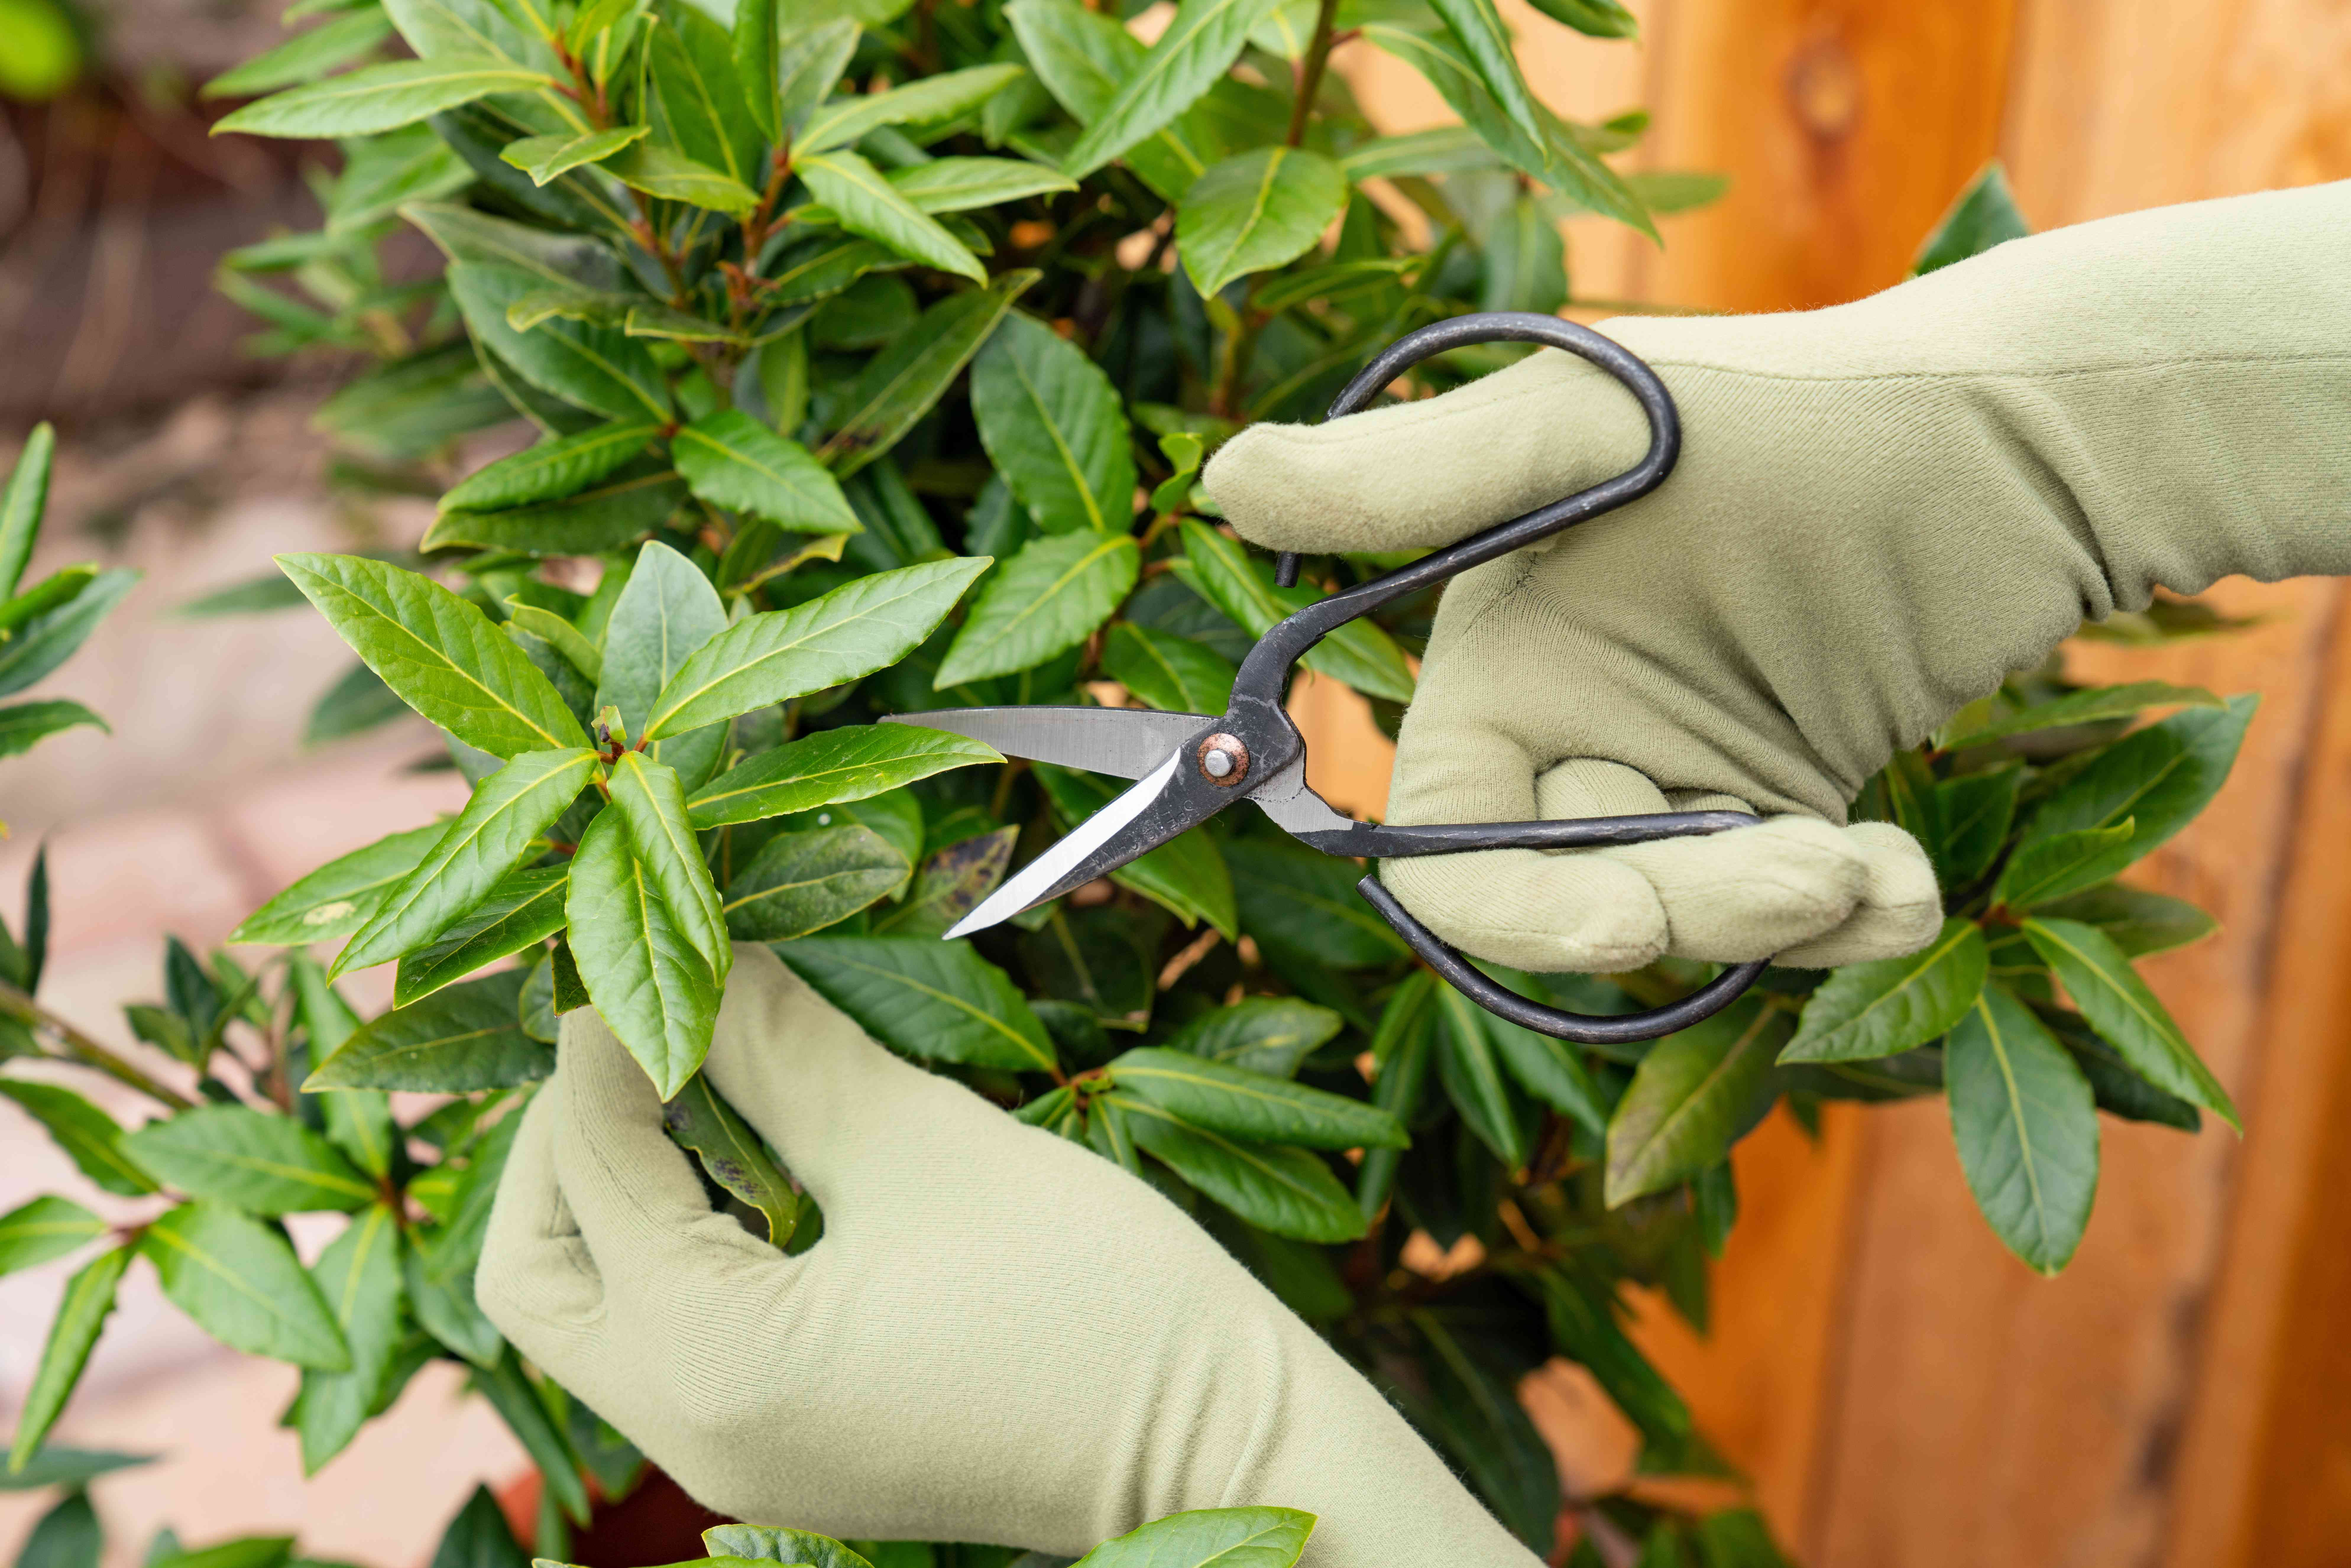 Bay laurel branch pruned with gardening scissors and gloves